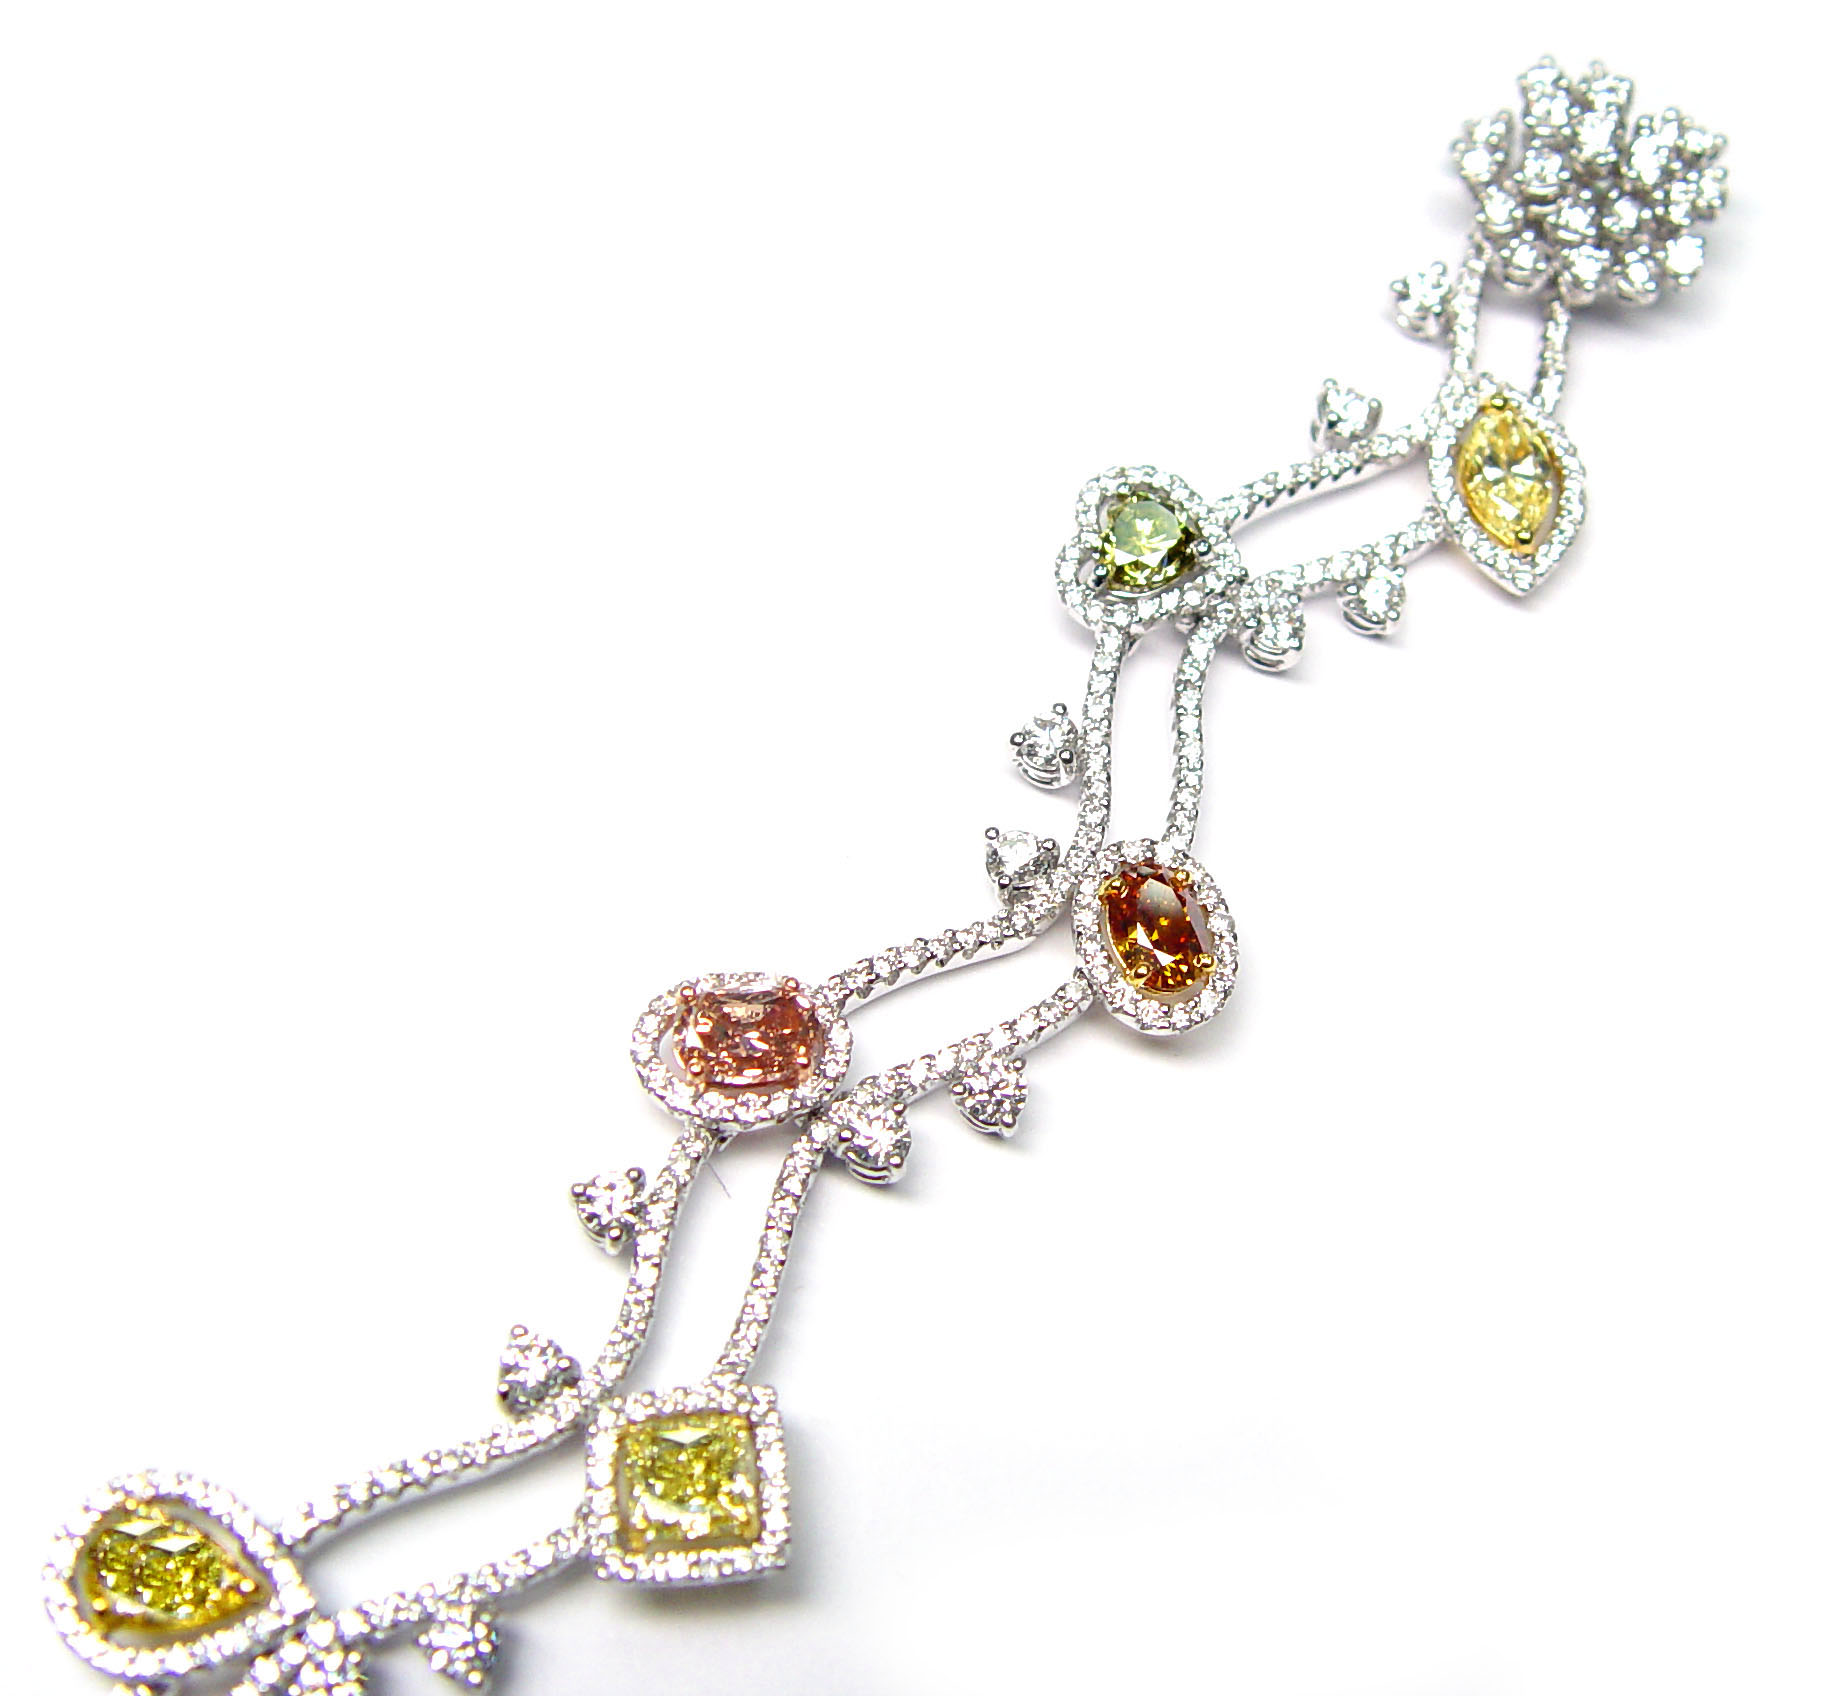 View Natural Multicolor Diamond Bracelet